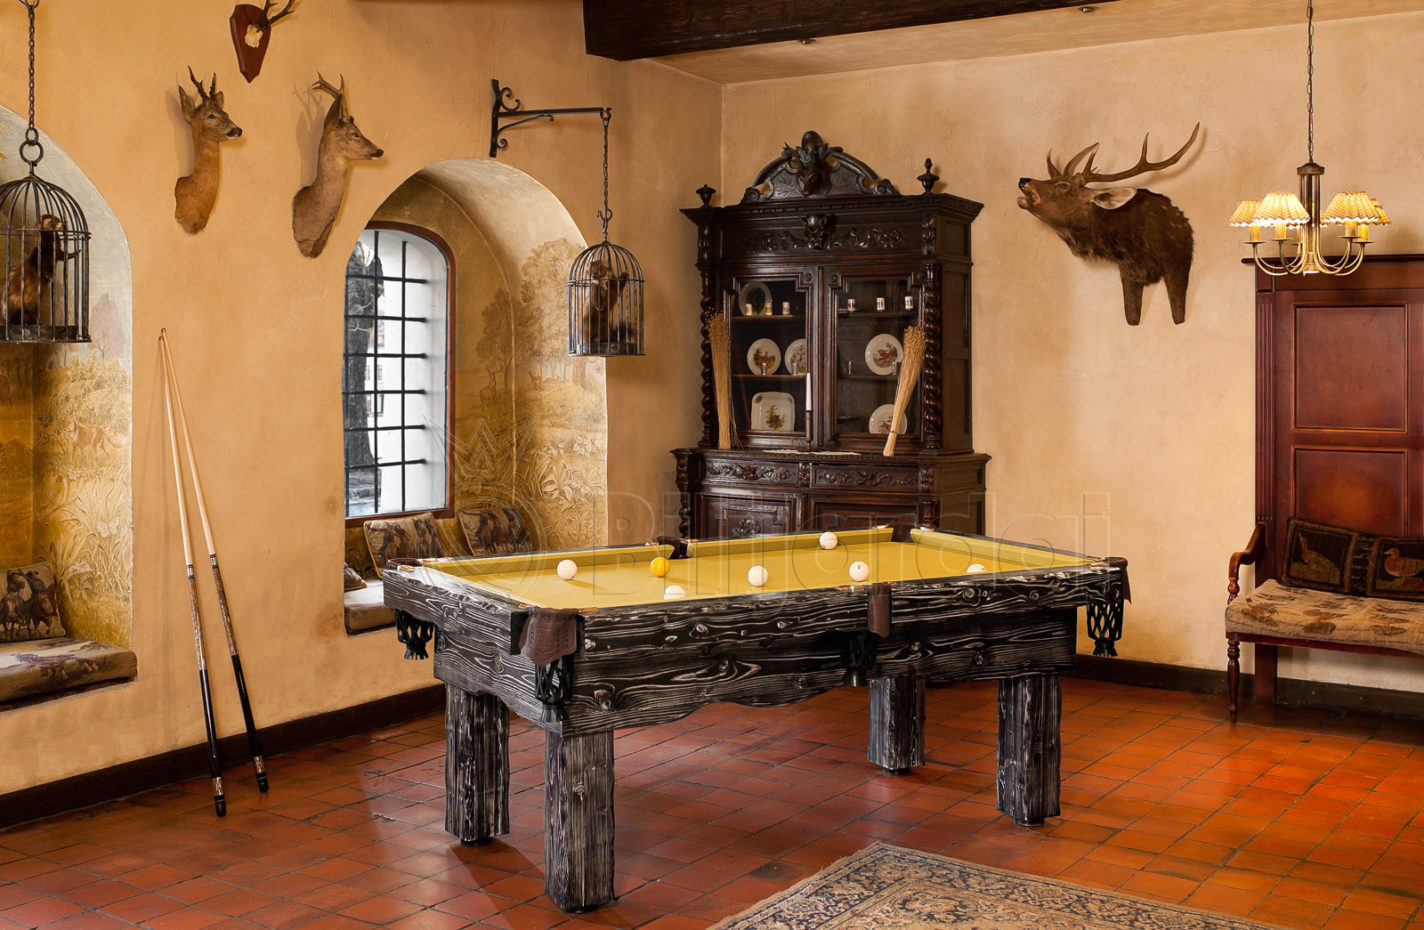 Artemis Rustic Pool Table, Lithuania